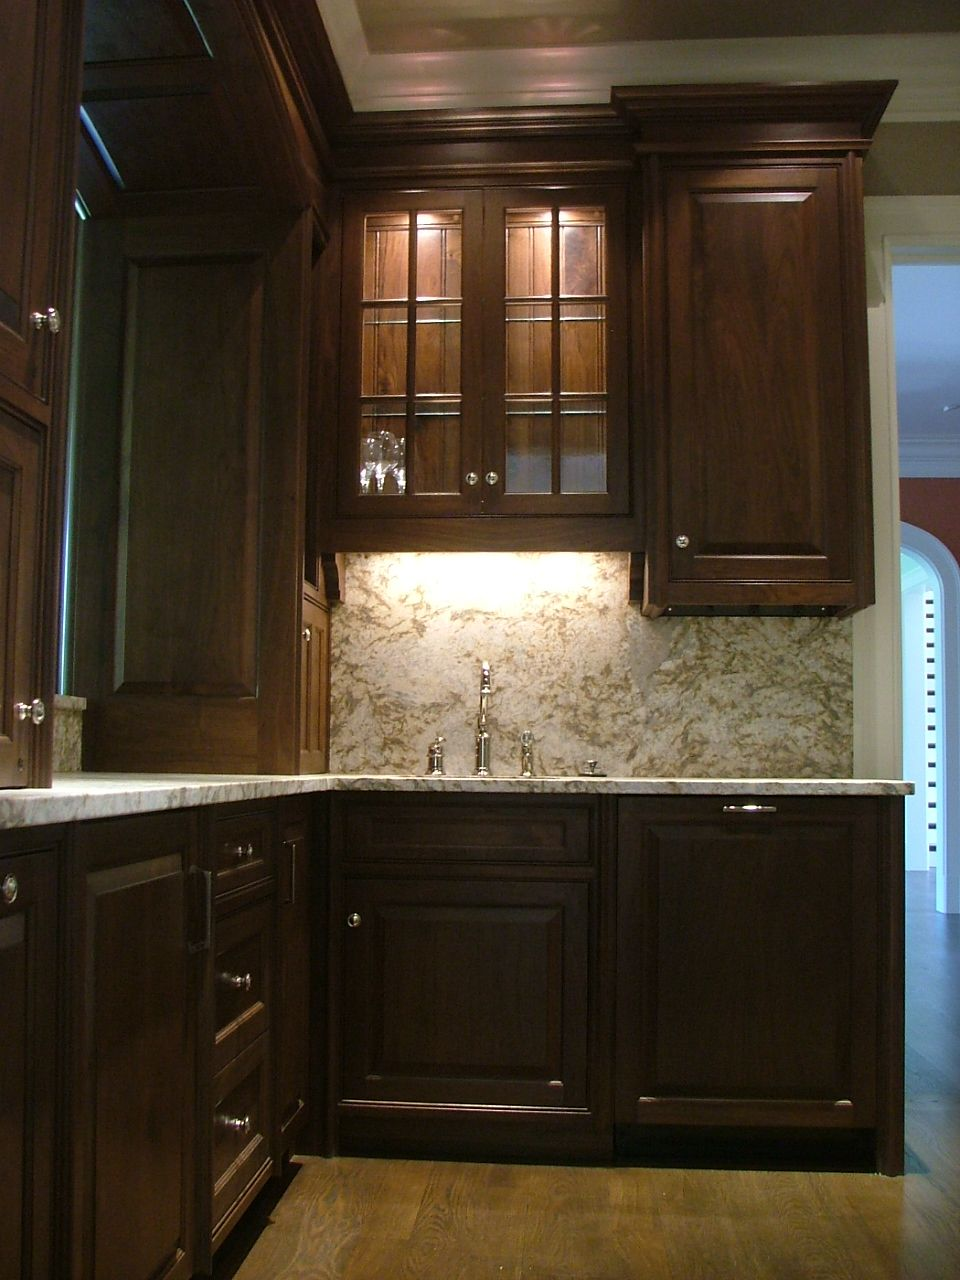 Prime Westwood Cabinetry And Millwork Columbus Ohio Home Interior And Landscaping Transignezvosmurscom